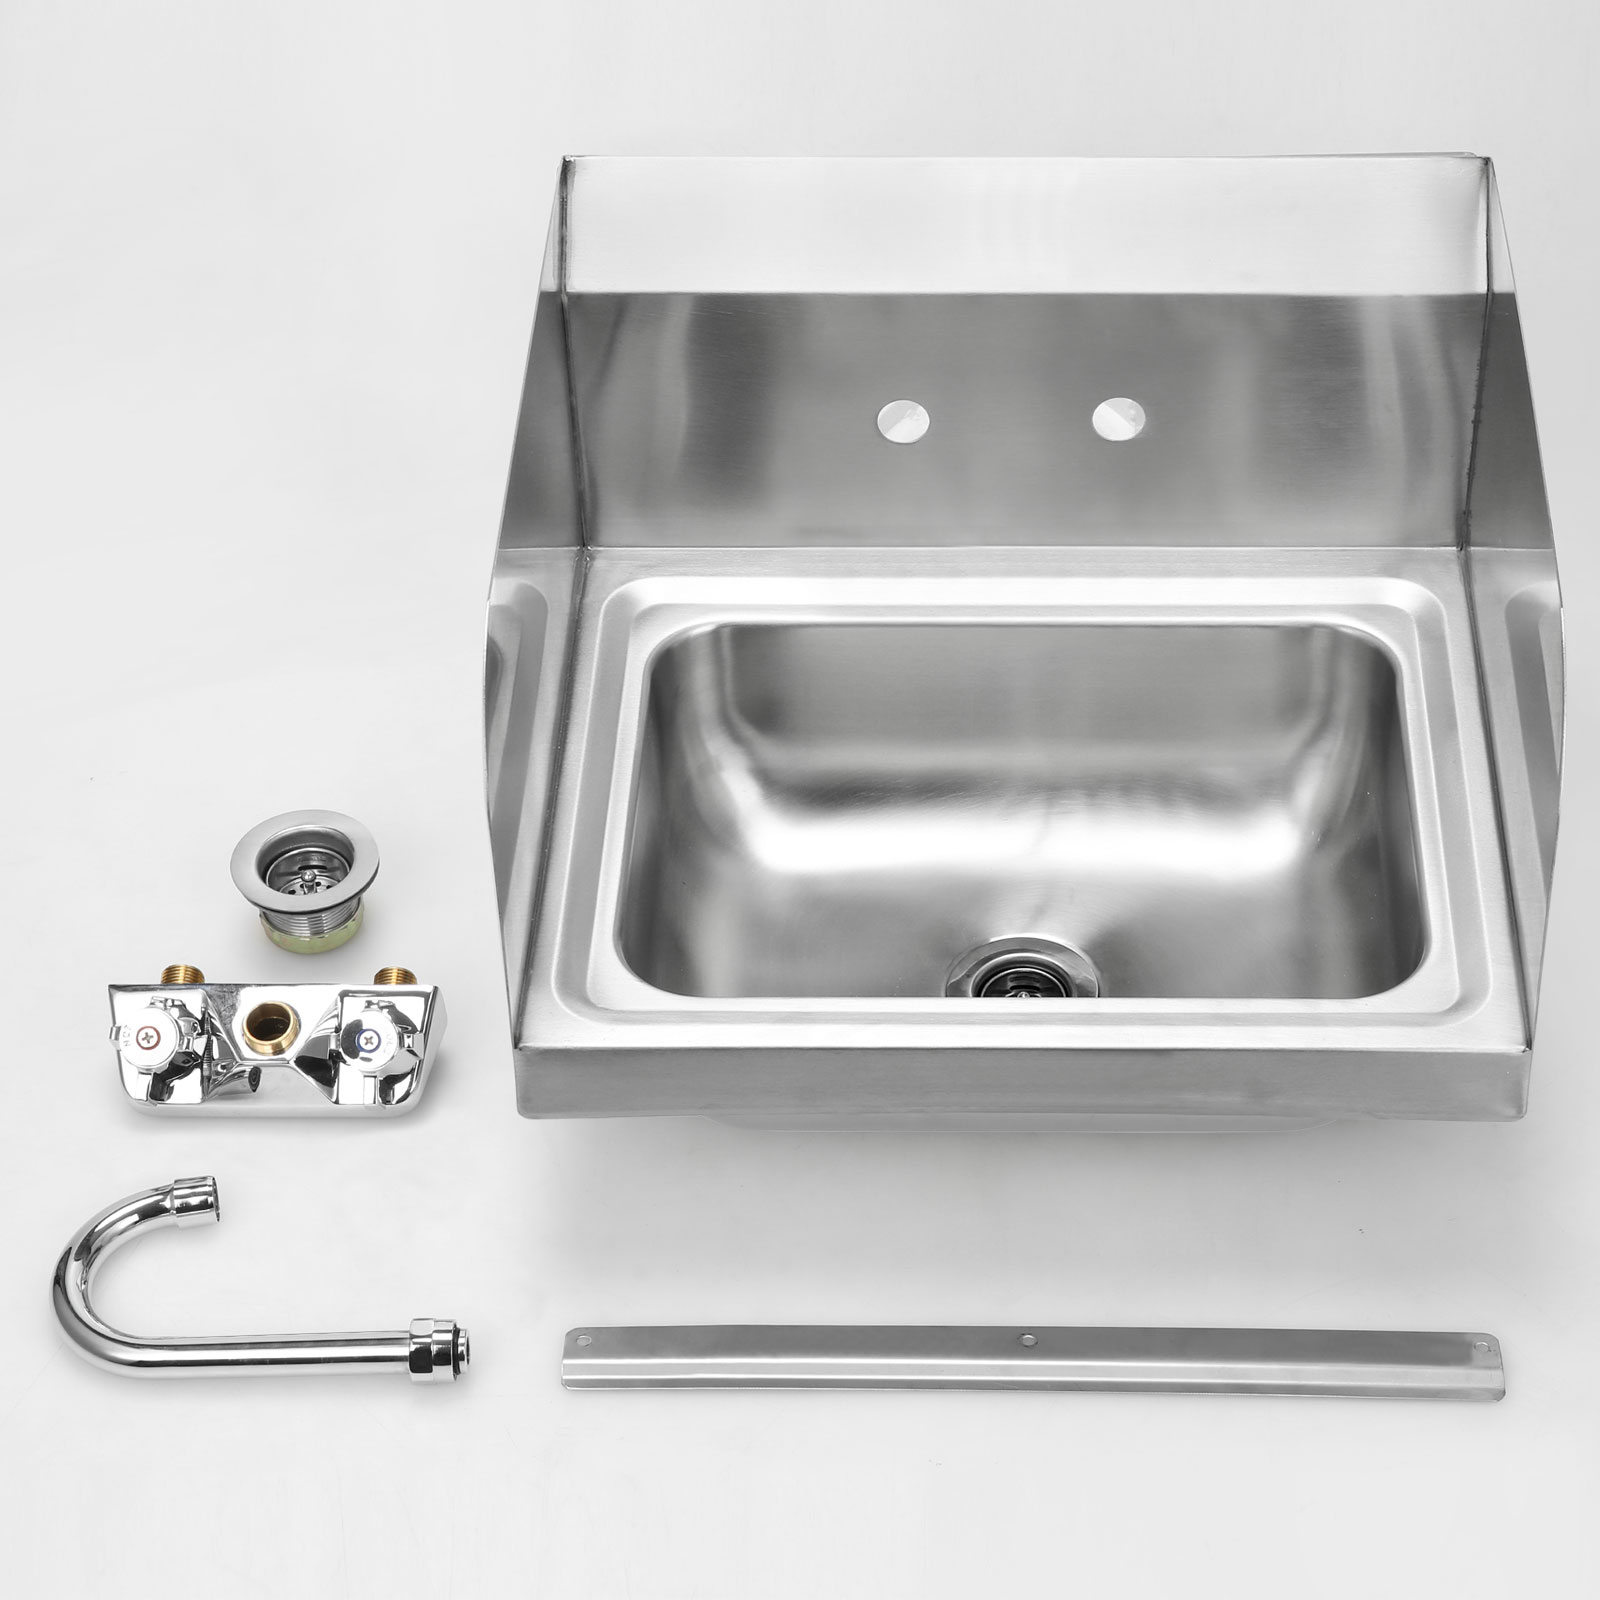 Commercial 17 X15 Stainless Steel Kitchen Sink Basin Wall Mount Side Splashes Ebay